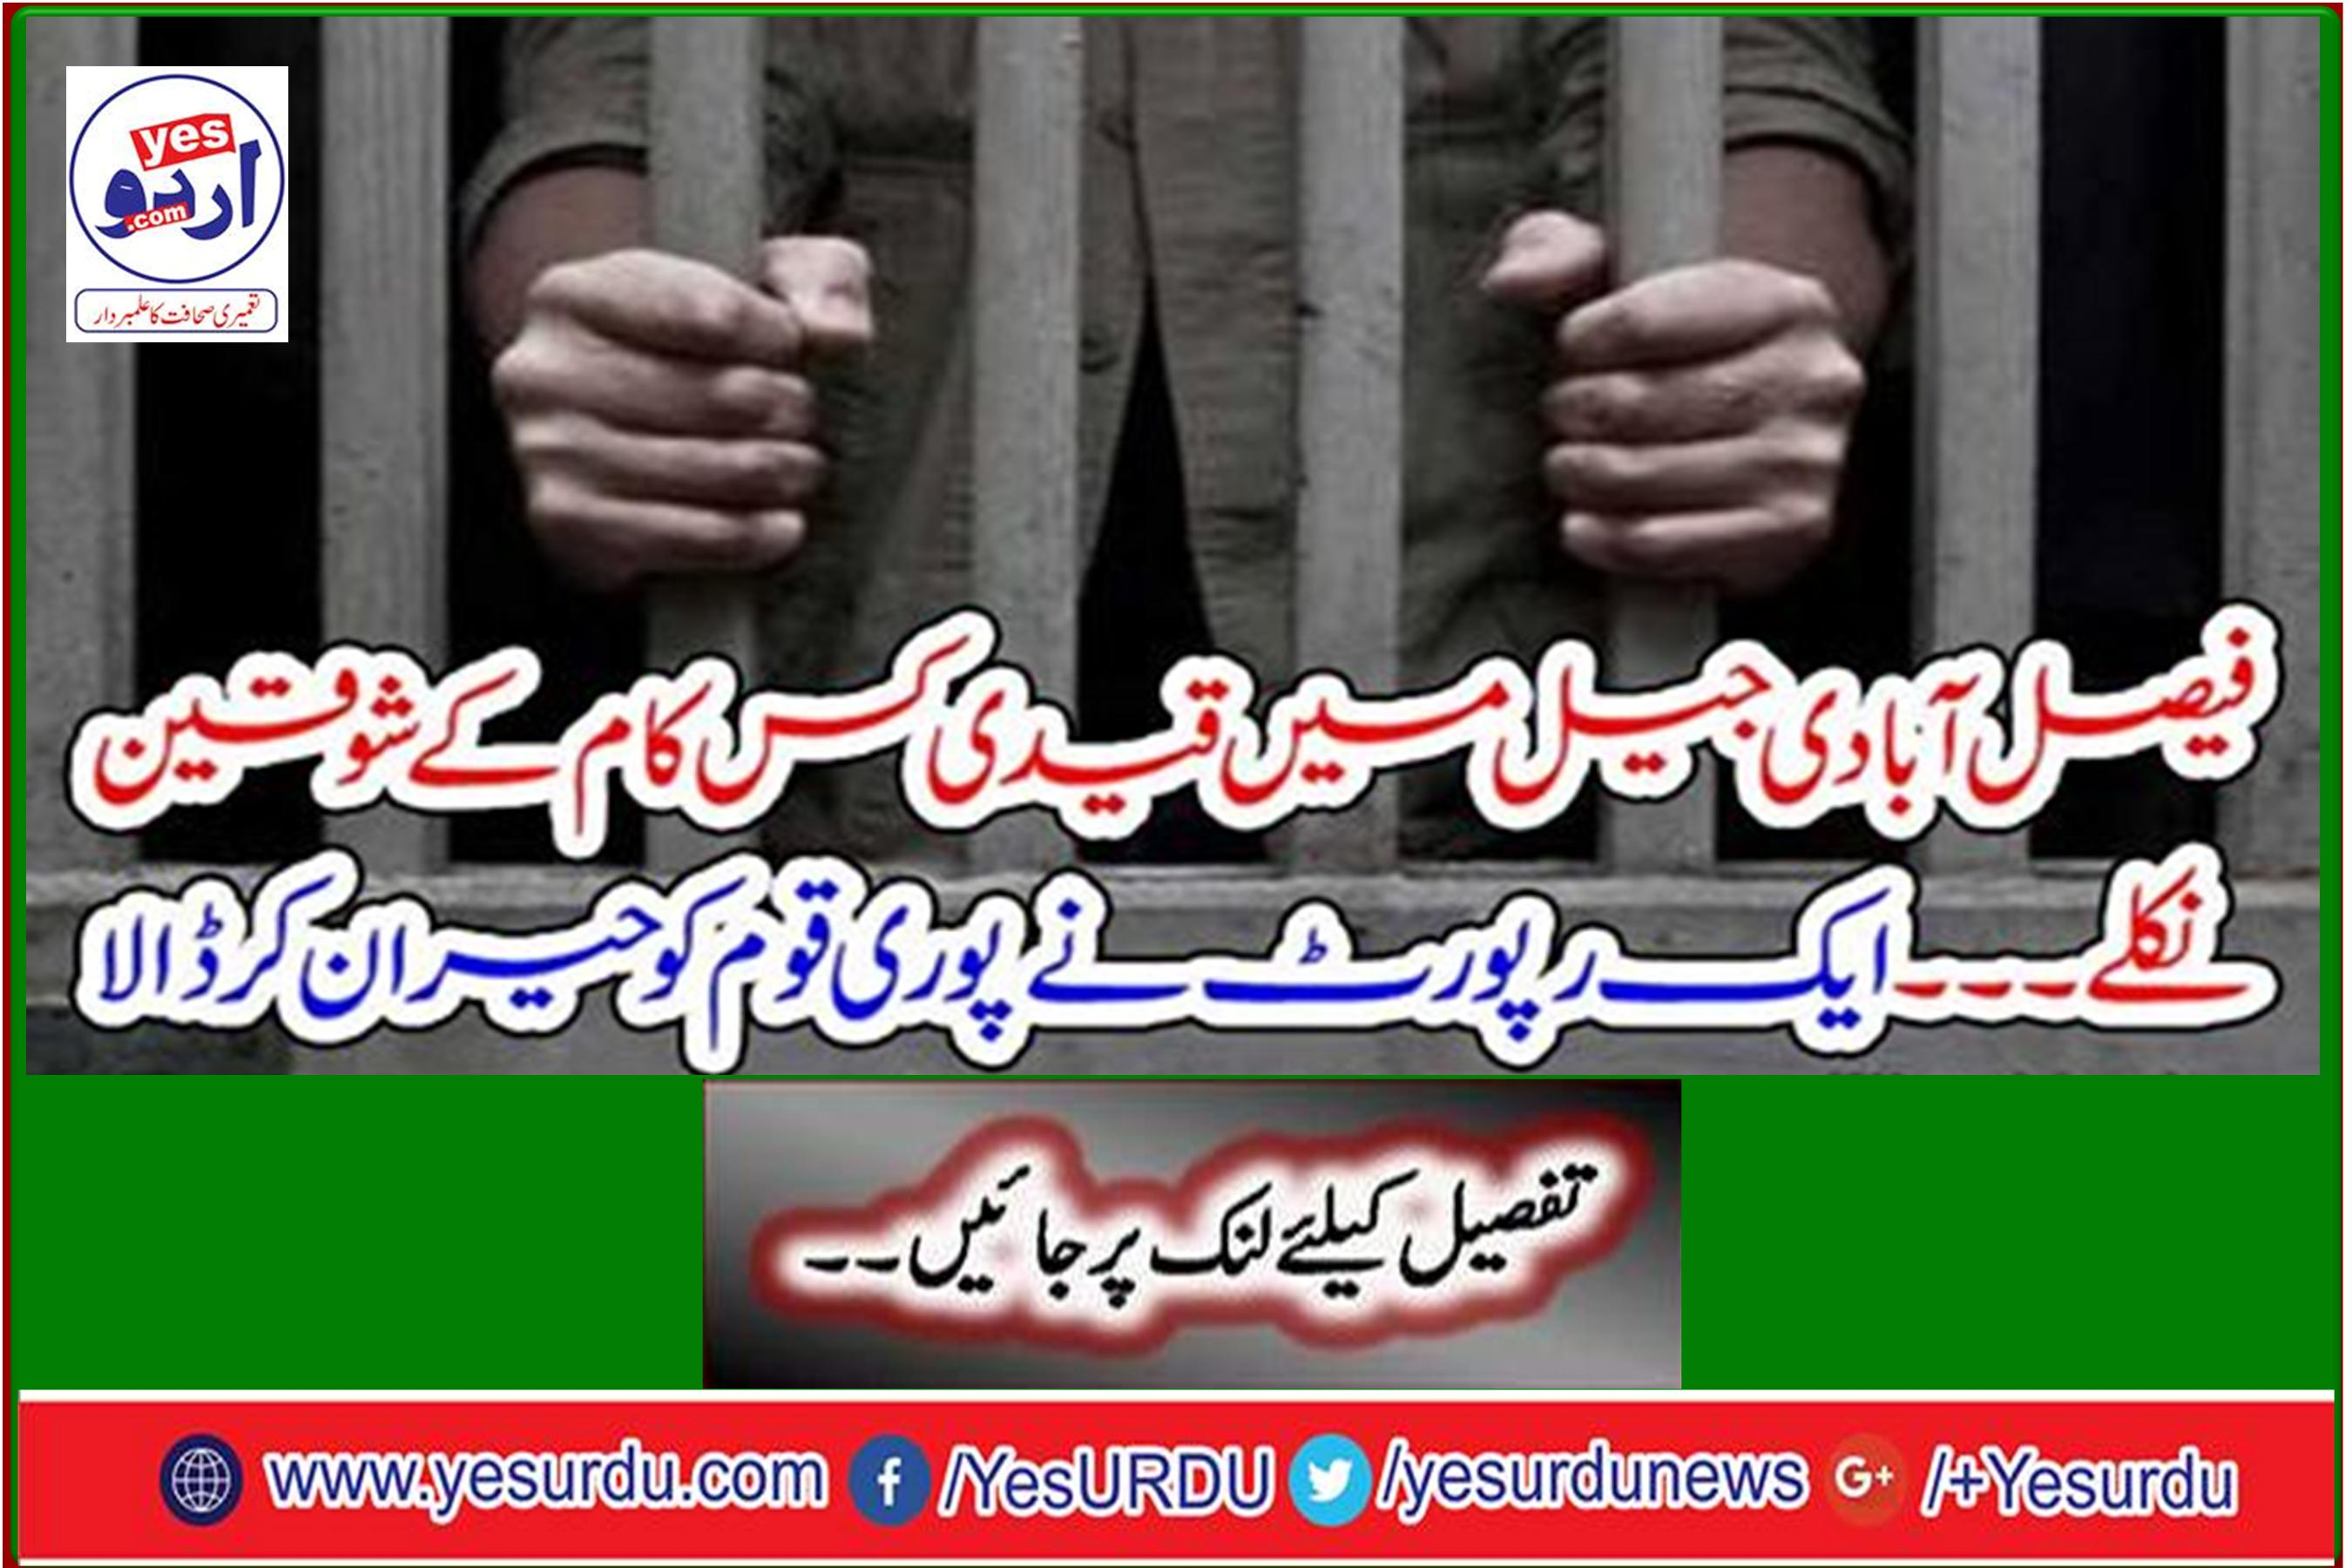 Prisoners in the Faisalabad Jail look for work. One report shocked the whole nation